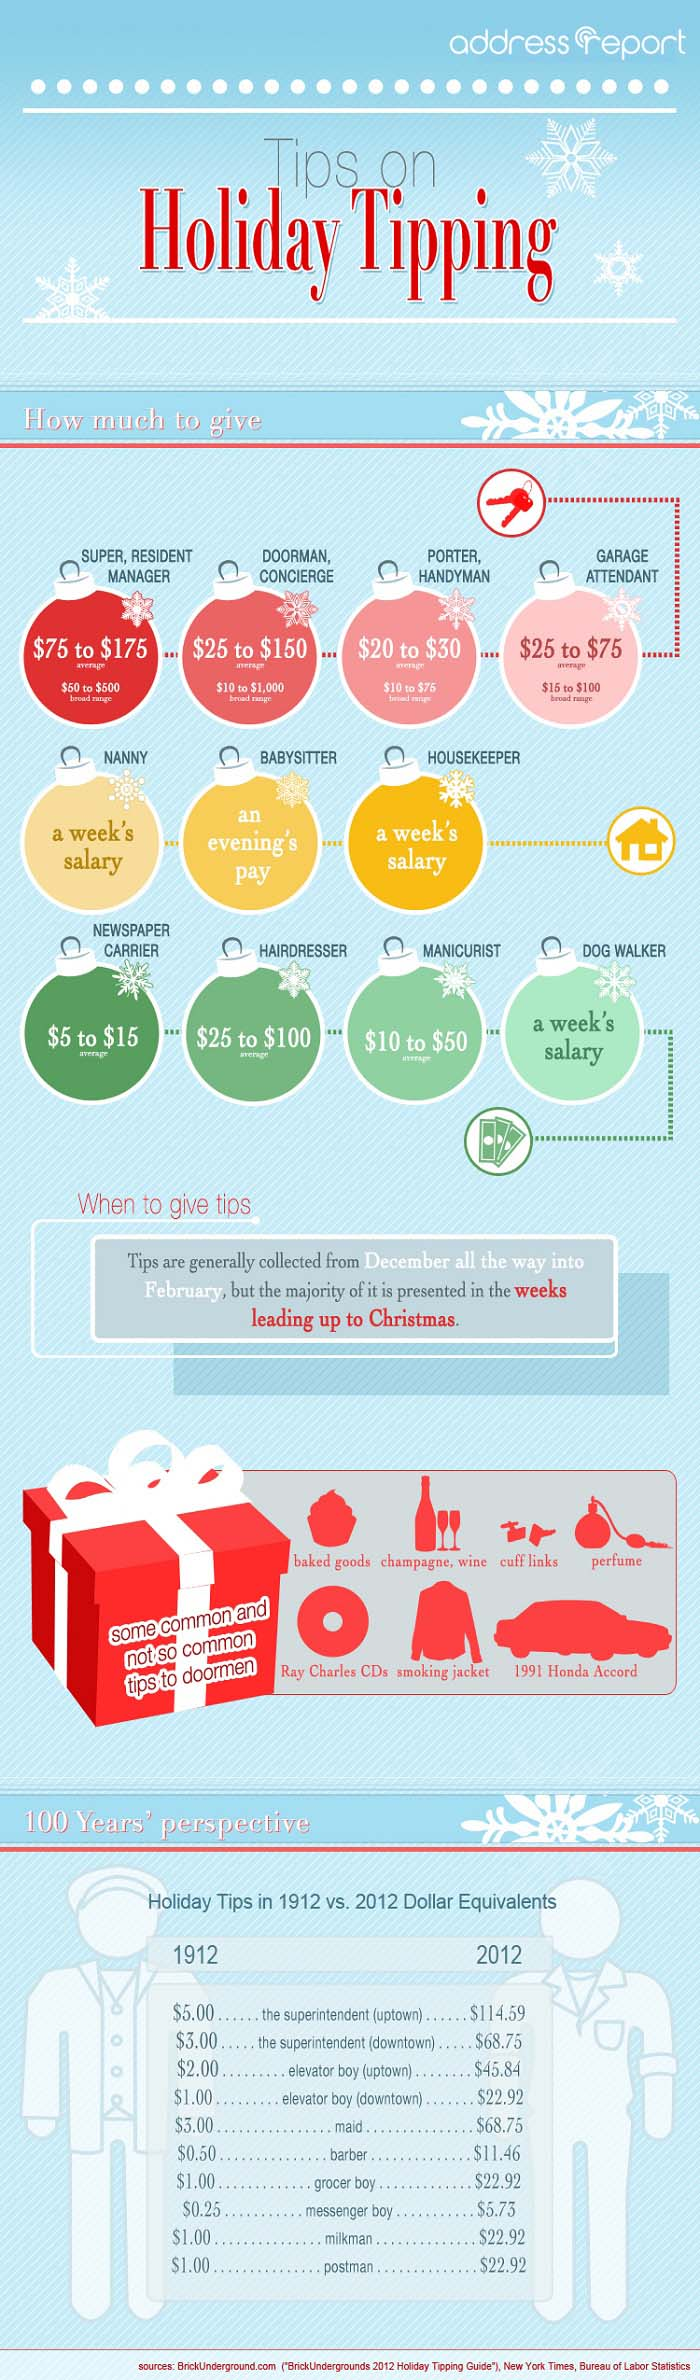 2013 Holiday Tipping Guide Infographic